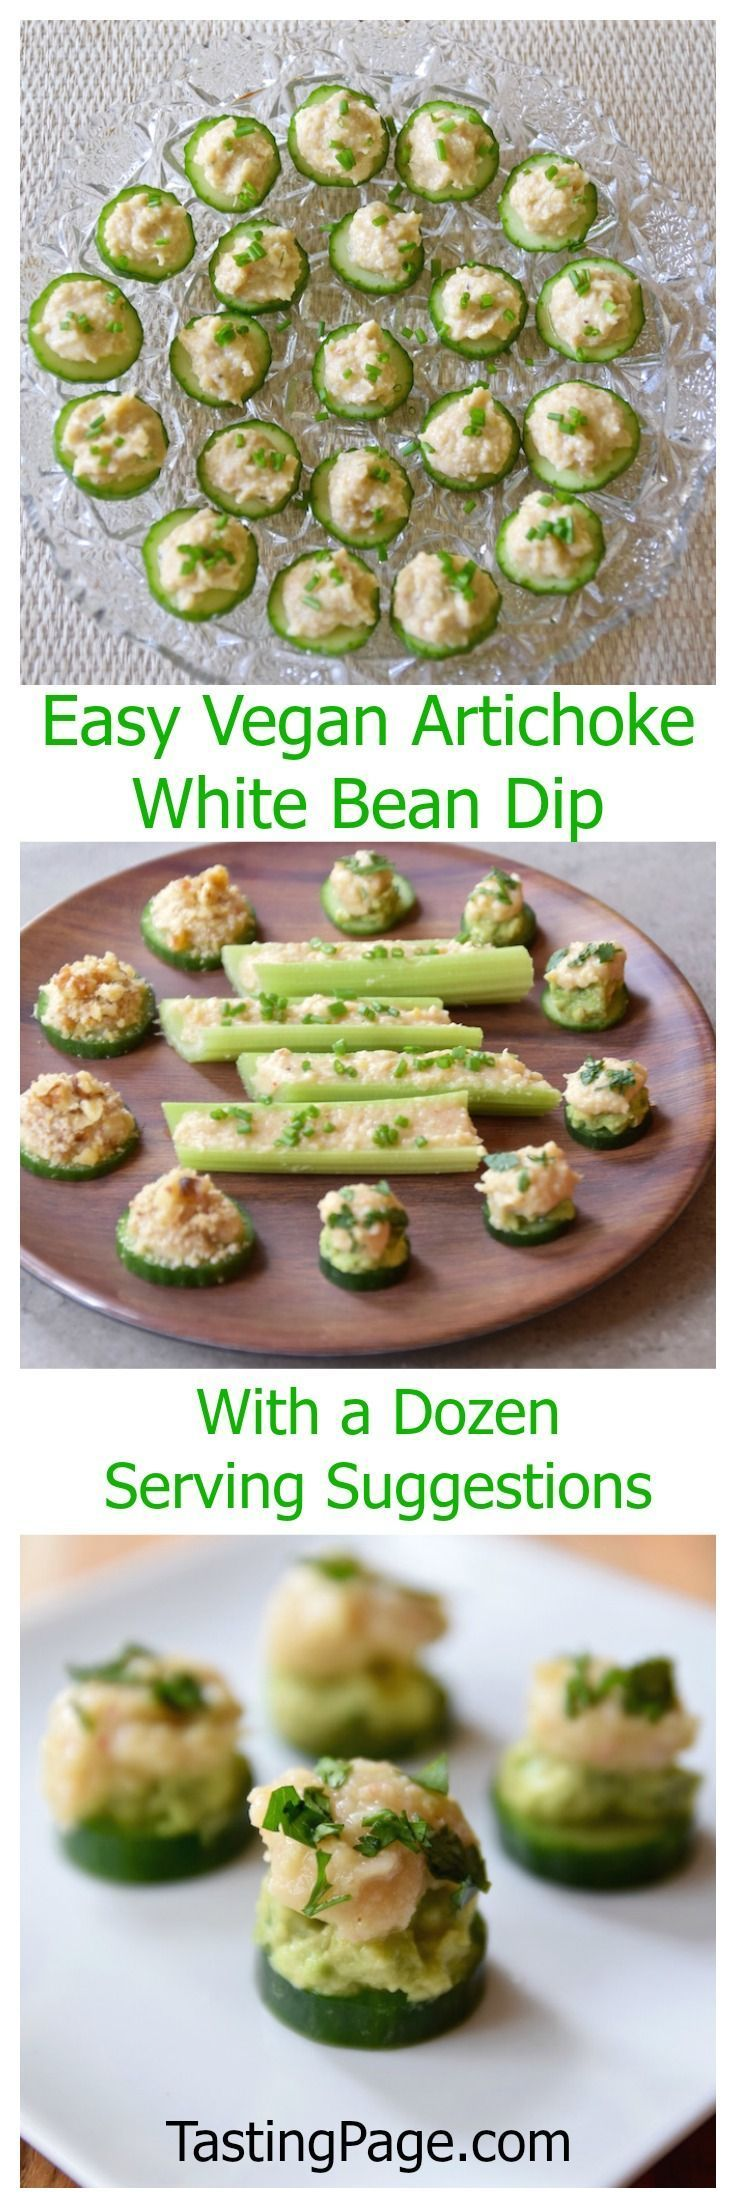 39 best images about Vegan Dip Recipes on Pinterest ...